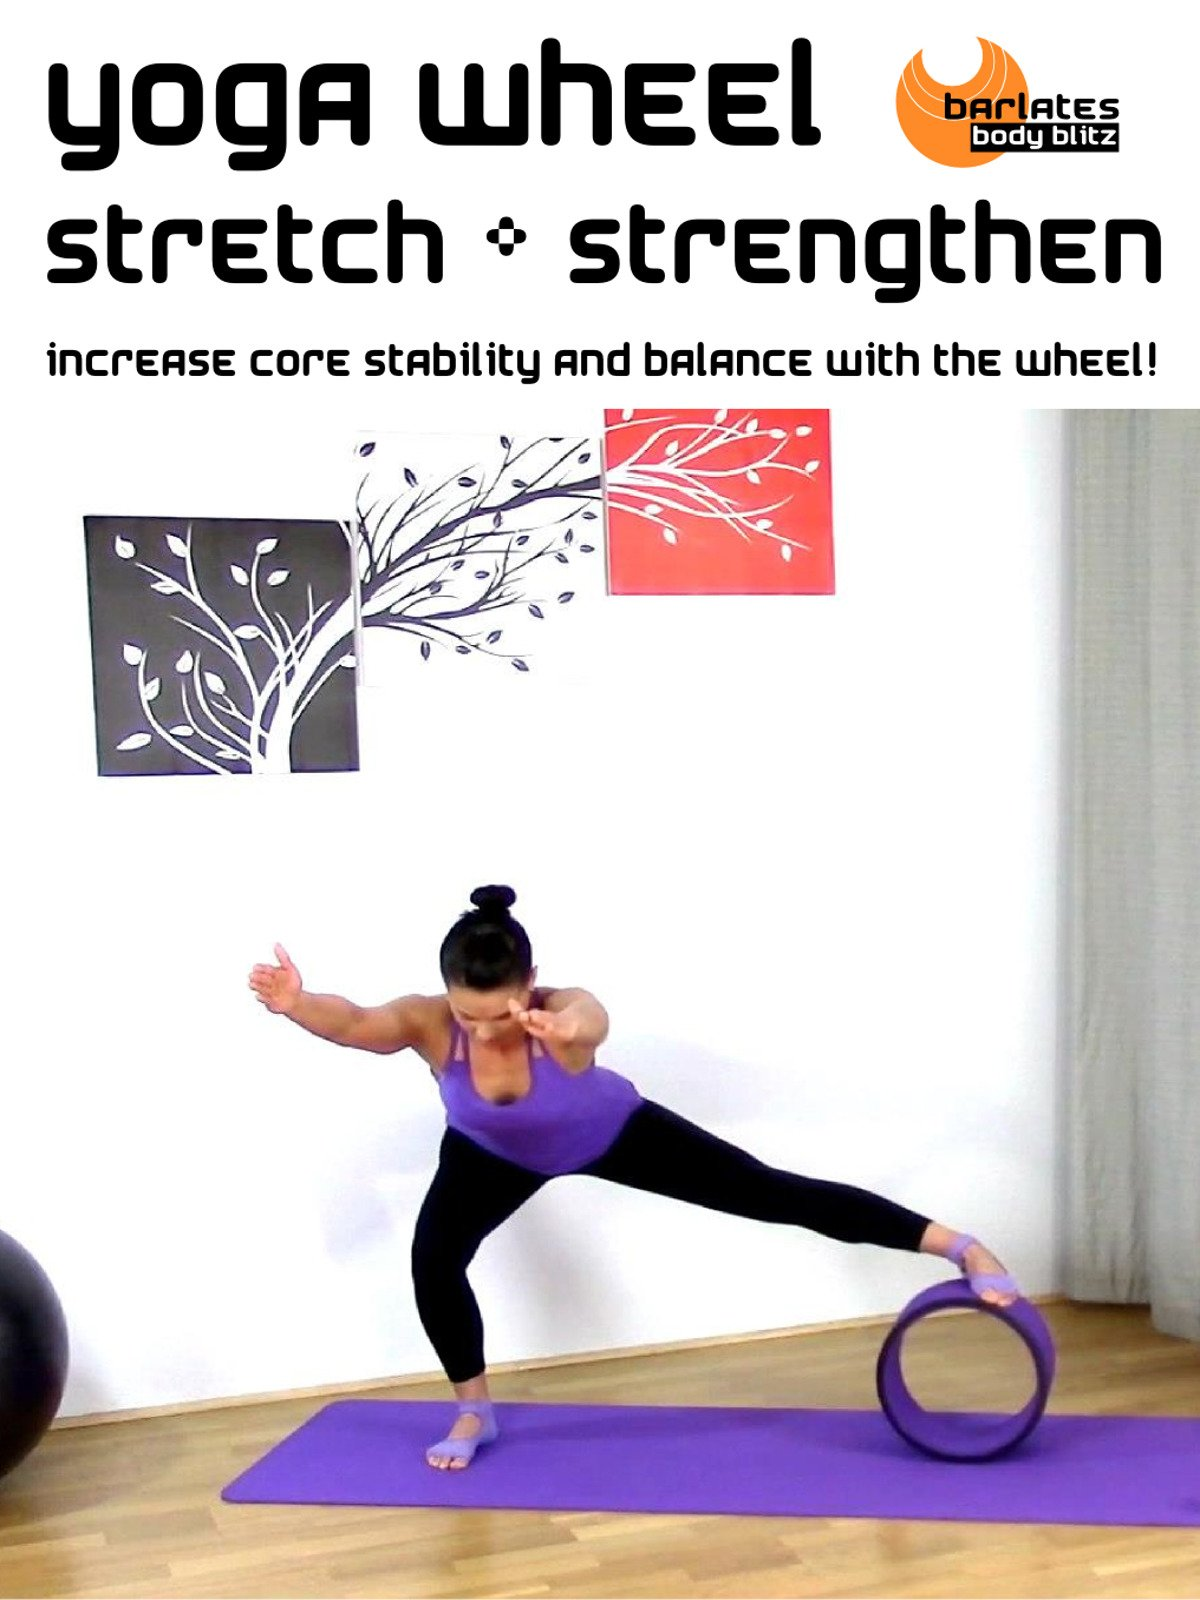 Amazon.com: Barlates Body Blitz Yoga Wheel Stretch and ...